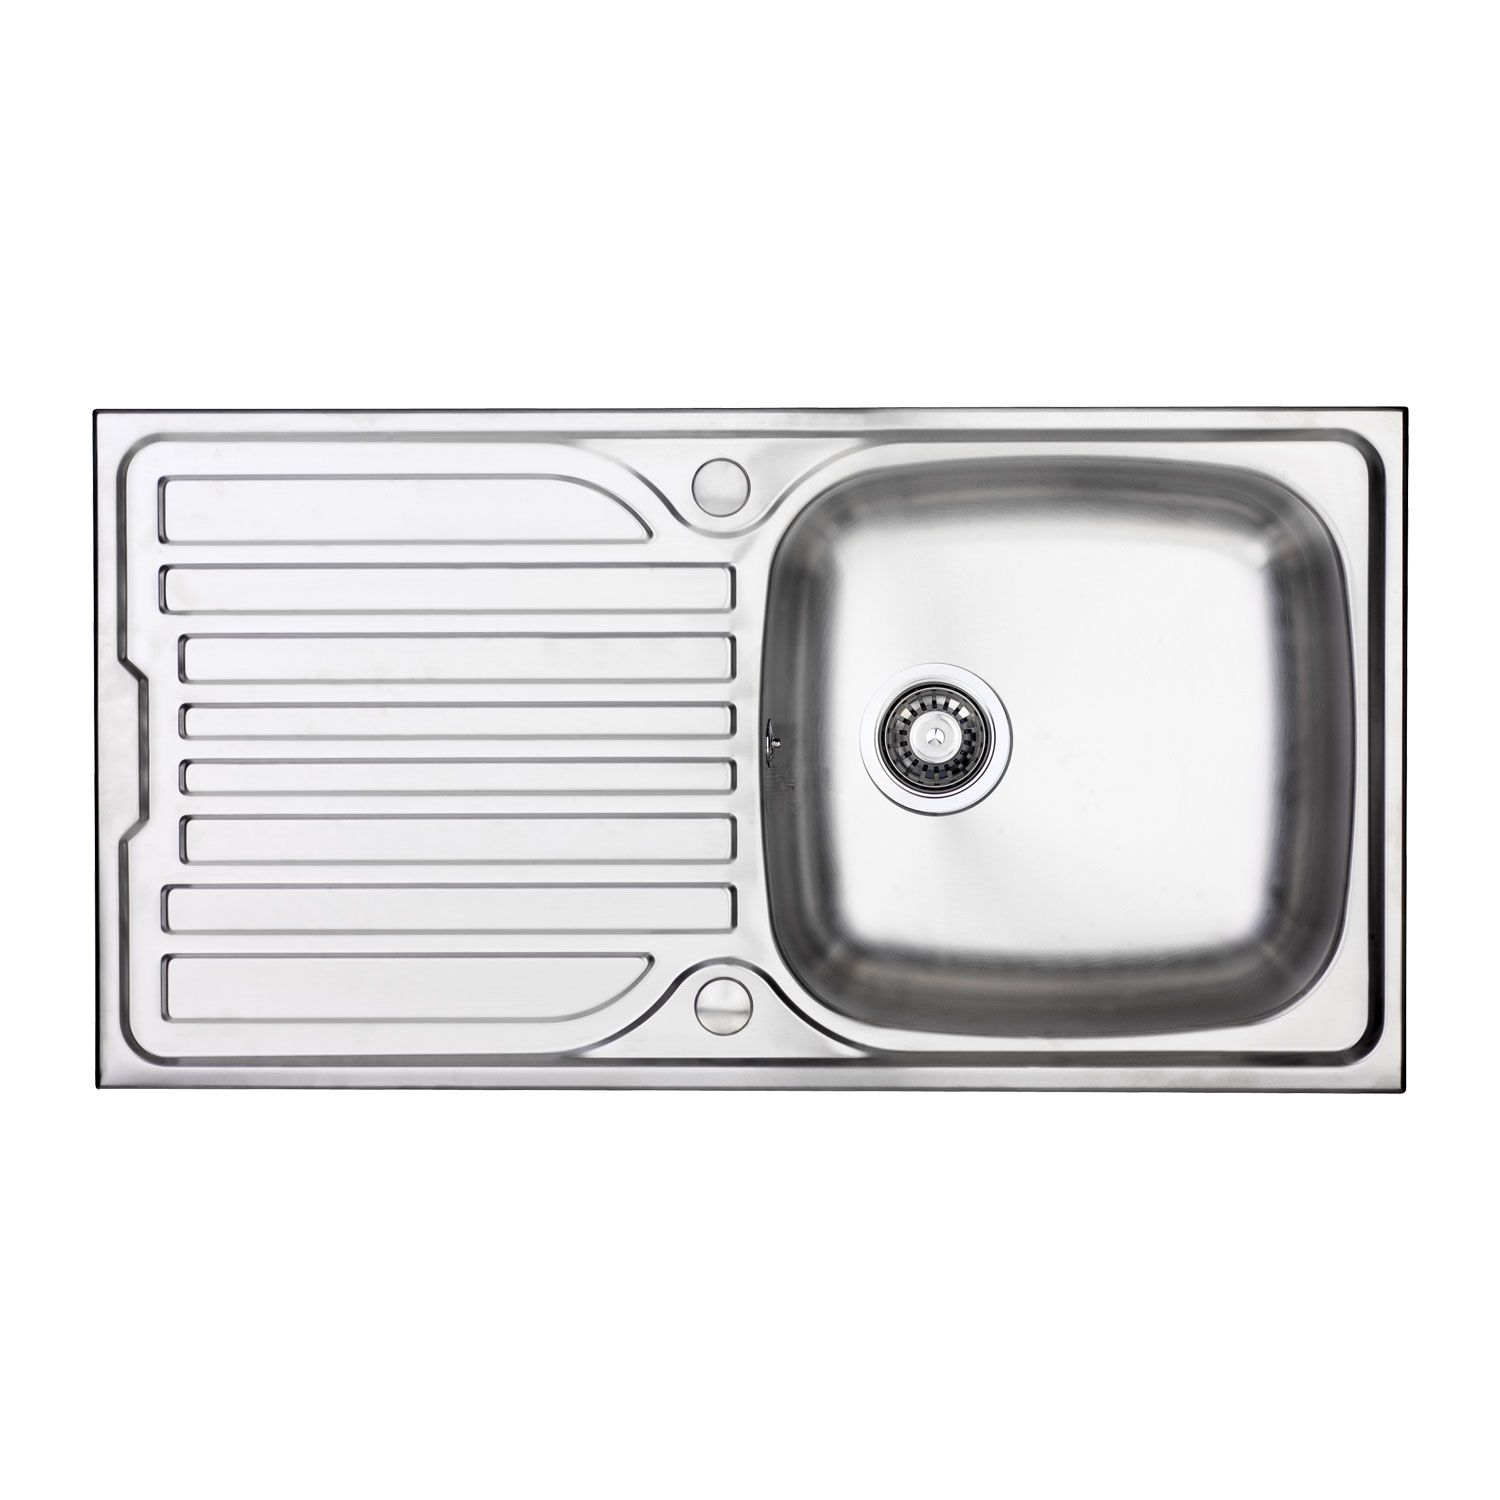 Bluci Turin 100 1 0 Bowl Sink And Drainer Sinks Taps Com